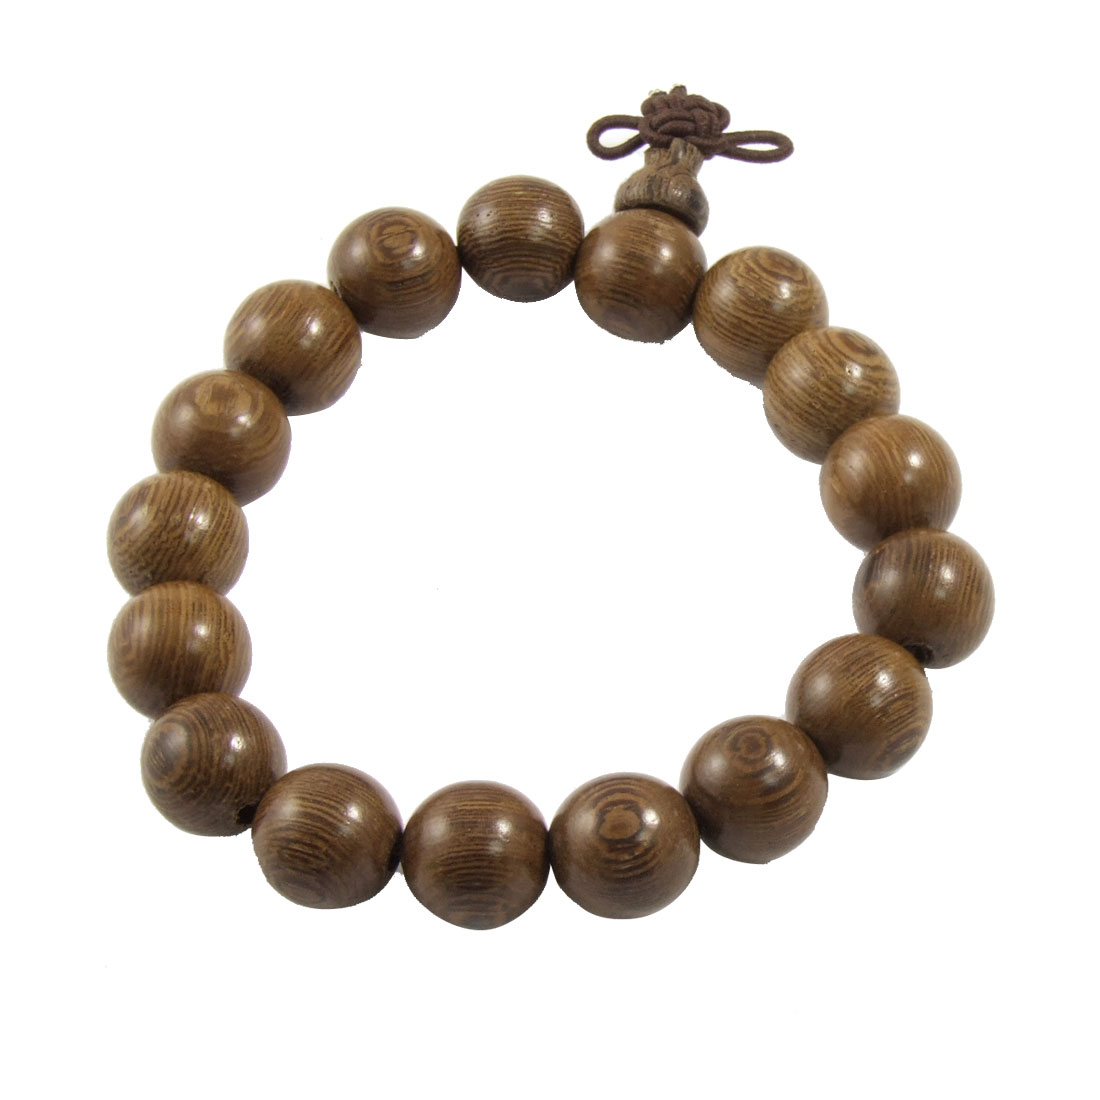 Buddhist Brown 11mm Diameter Wooden Beads Elastic Bracelet